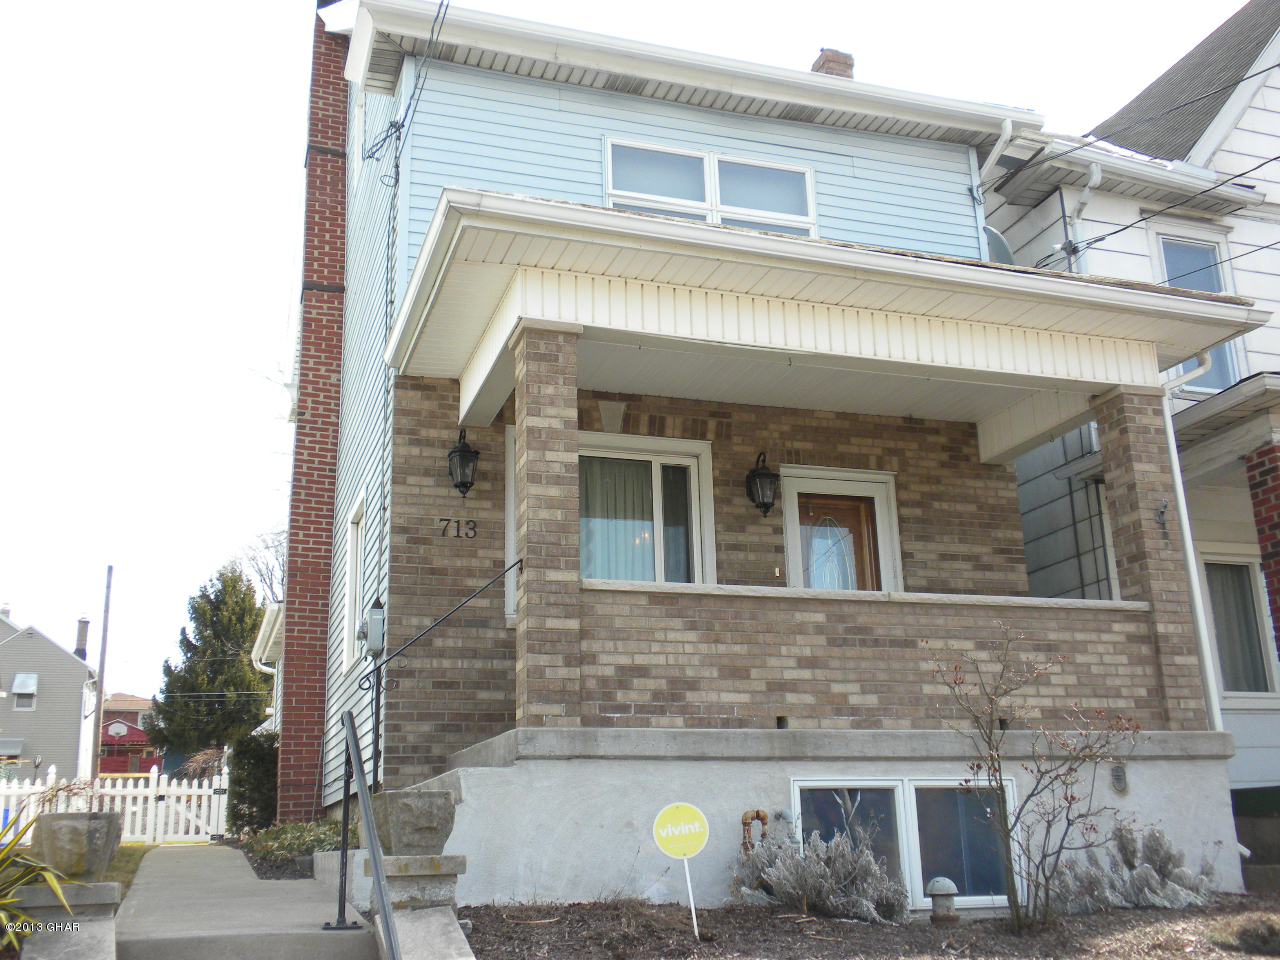 Rental Homes for Rent, ListingId:23041952, location: 713 VINE STREET N. Hazleton 18201